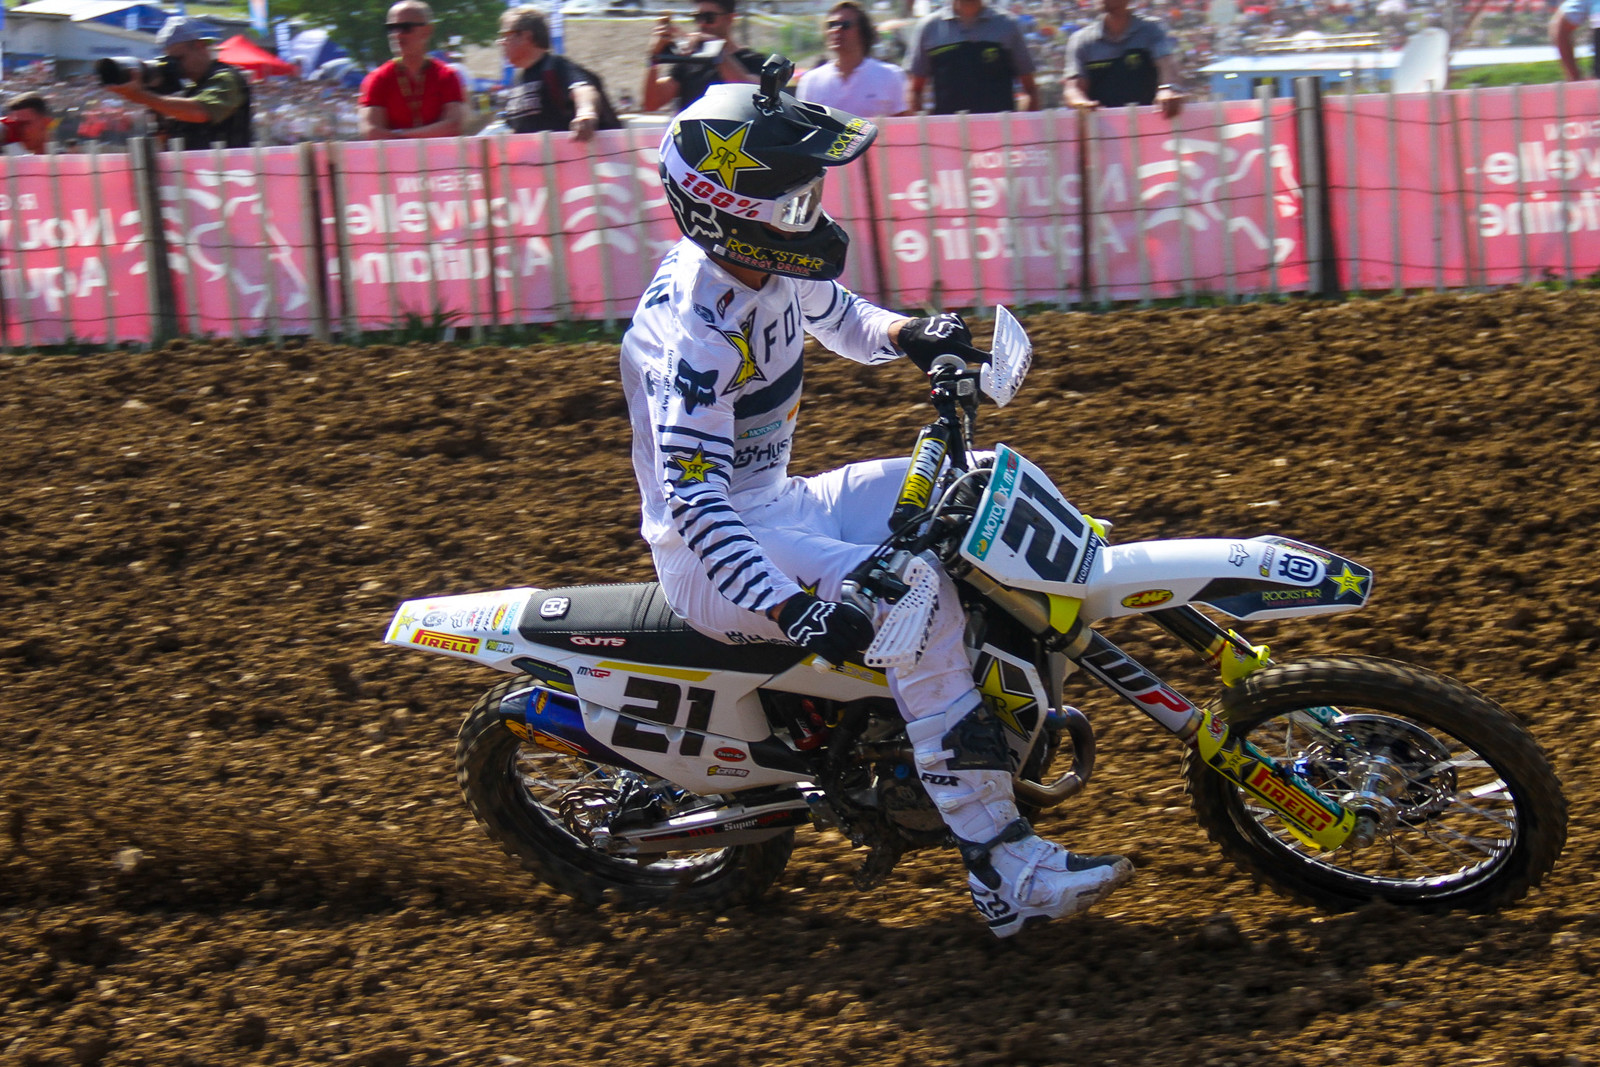 Fox went all out for Gautier Paulin's home race, with custom one-off gear and boots for the Frenchman.